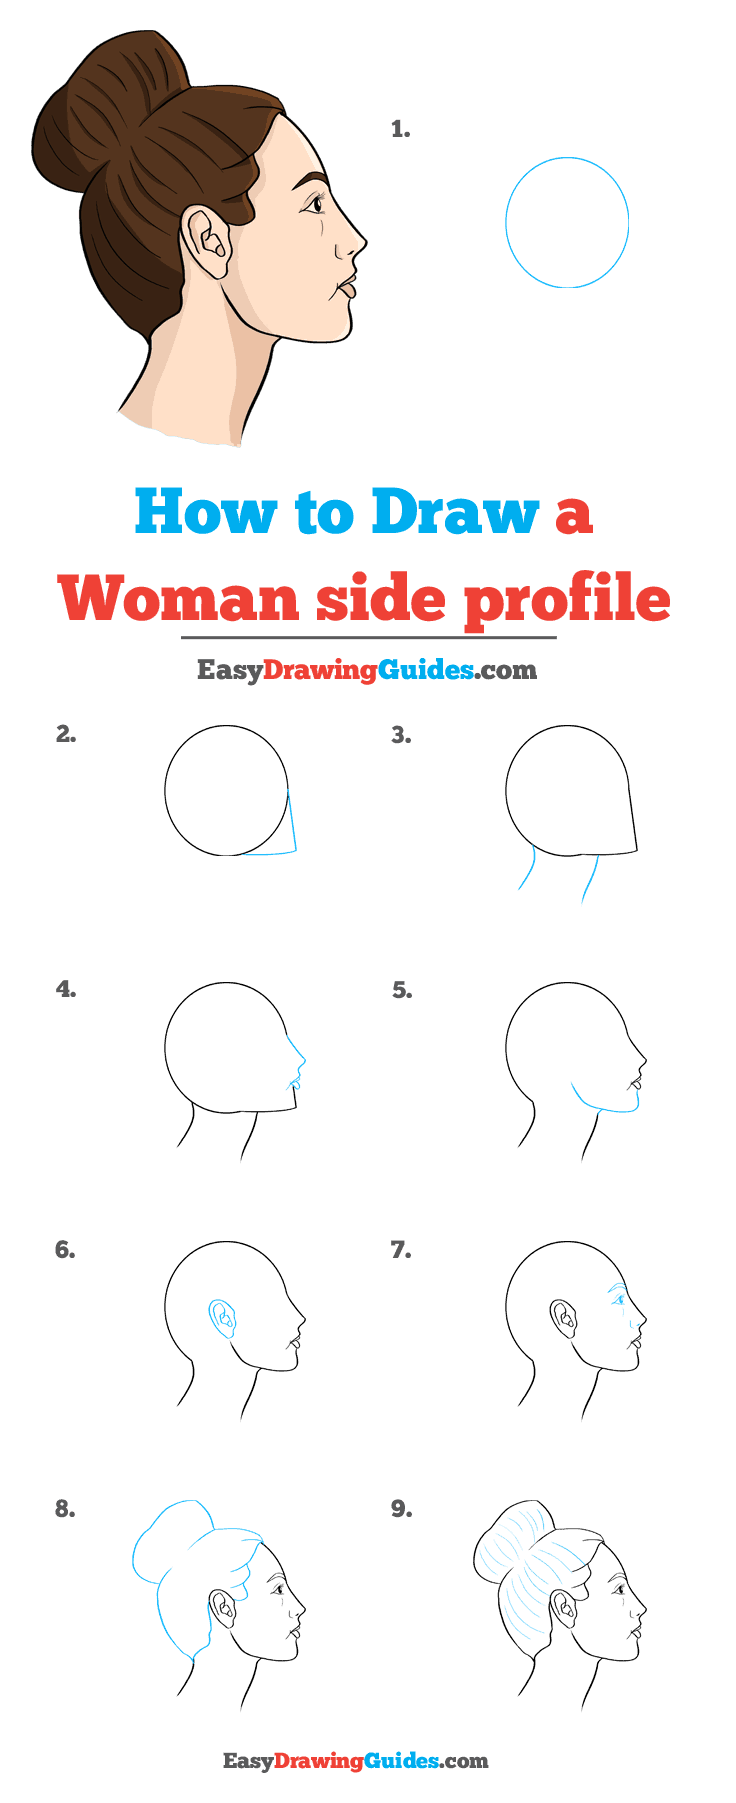 How to Draw Woman Side Profile